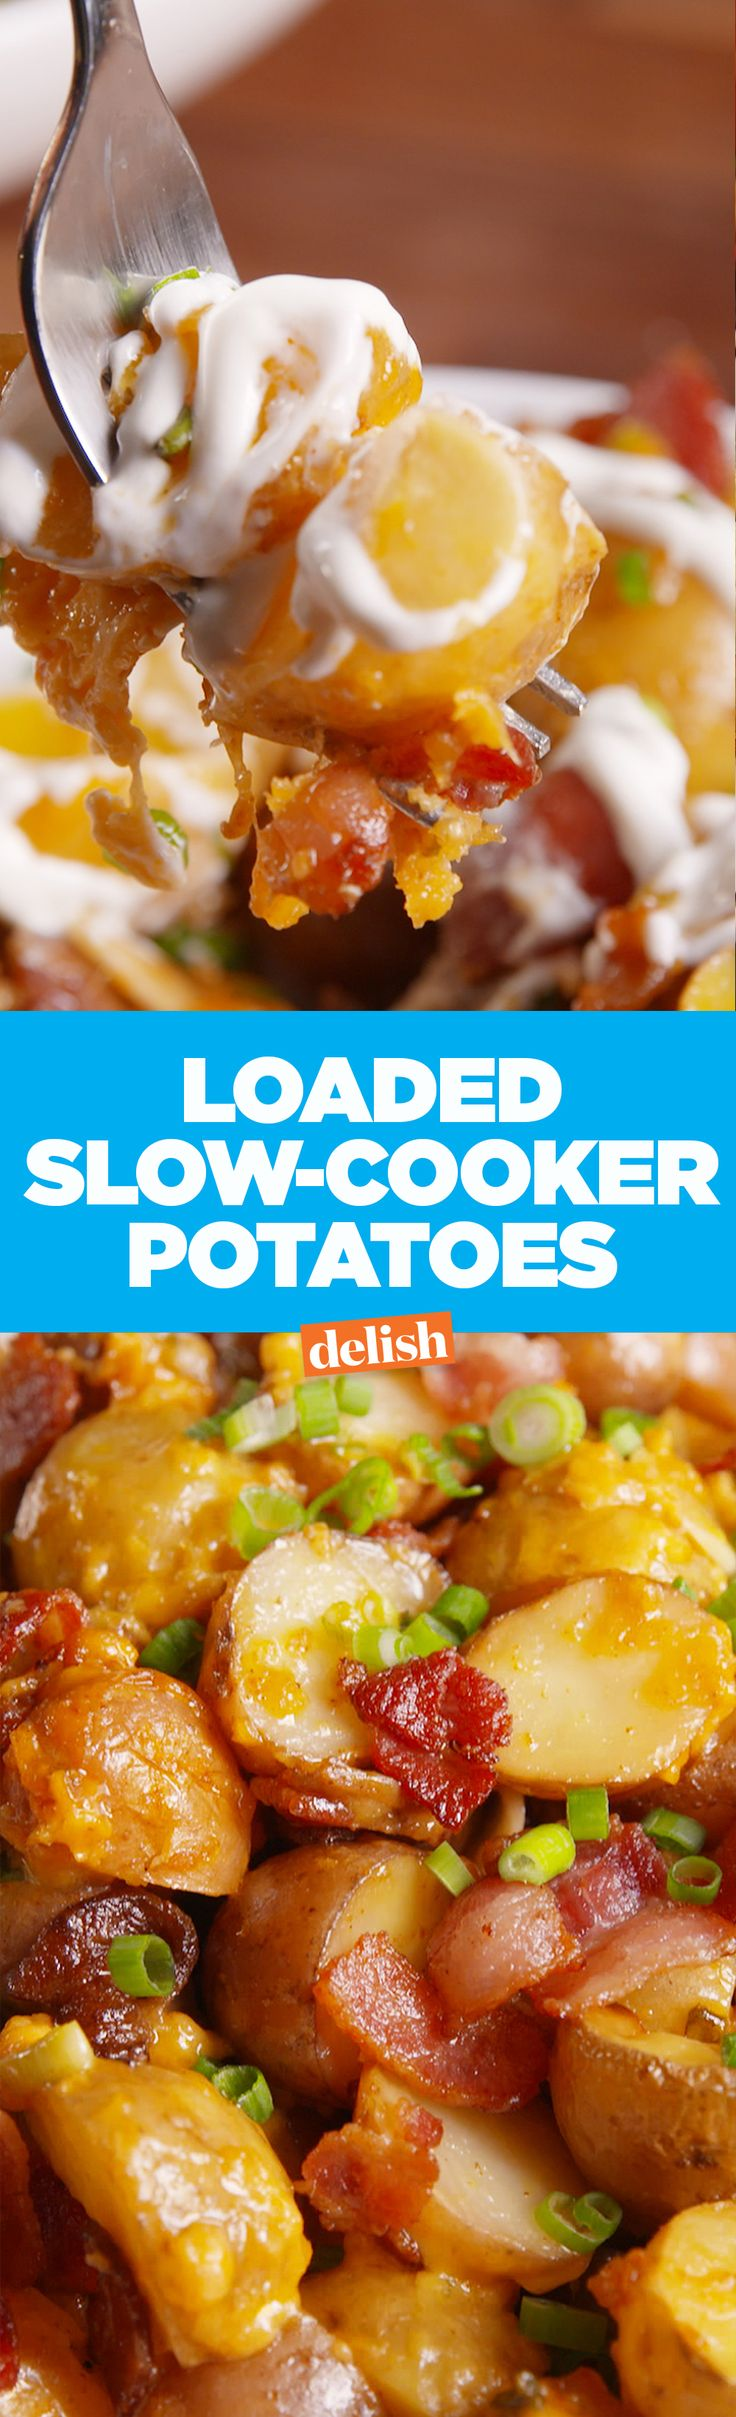 Loaded slow-cooker potatoes are the perfect food for when you don't have time to cook. Get the recipe on Delish.com.